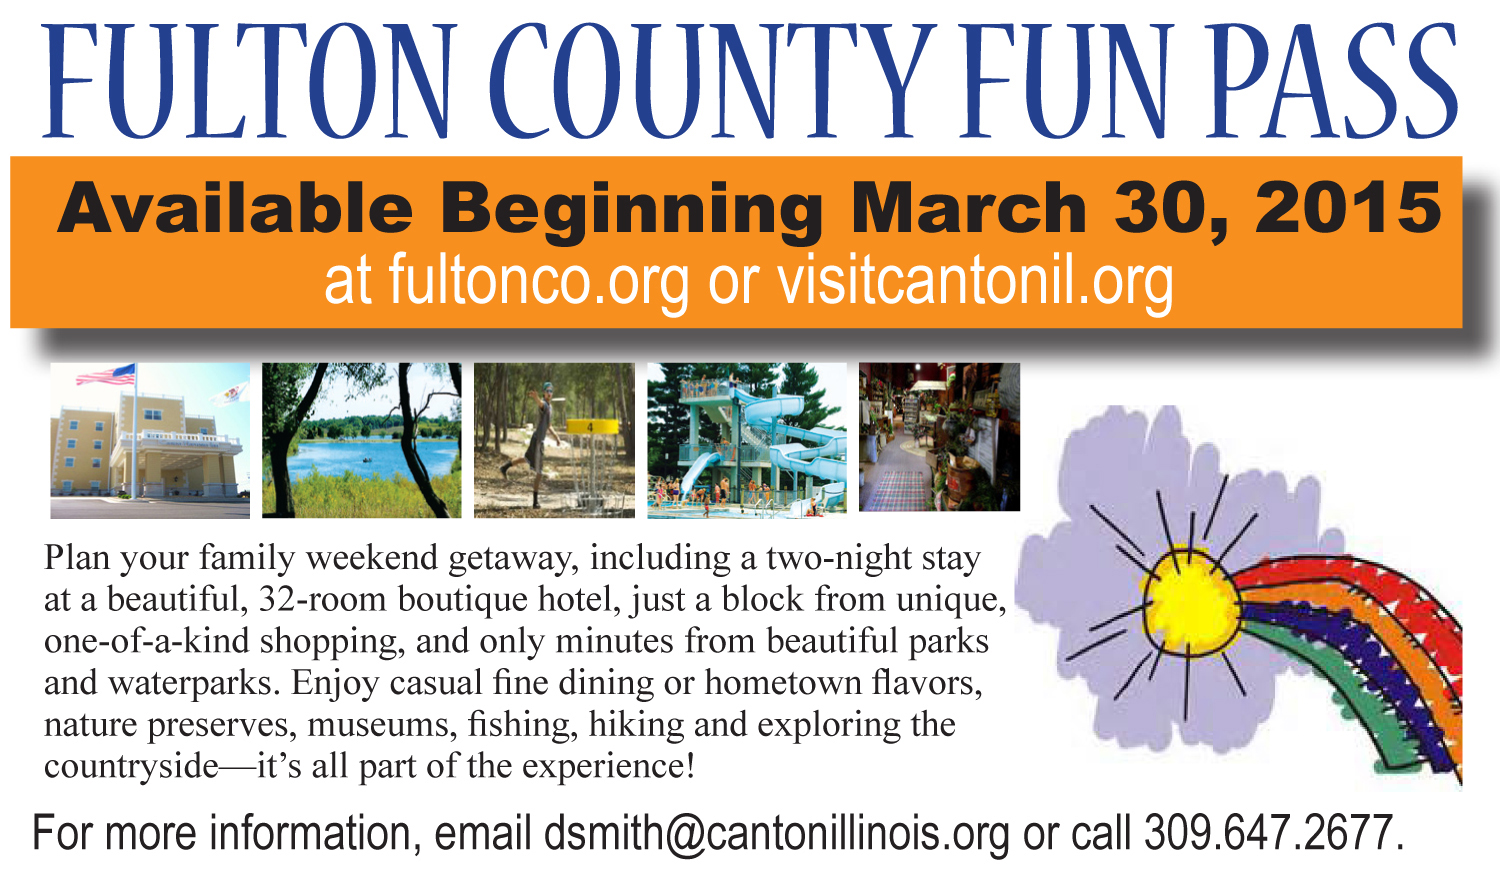 Fulton County Fun Pass Web Banner